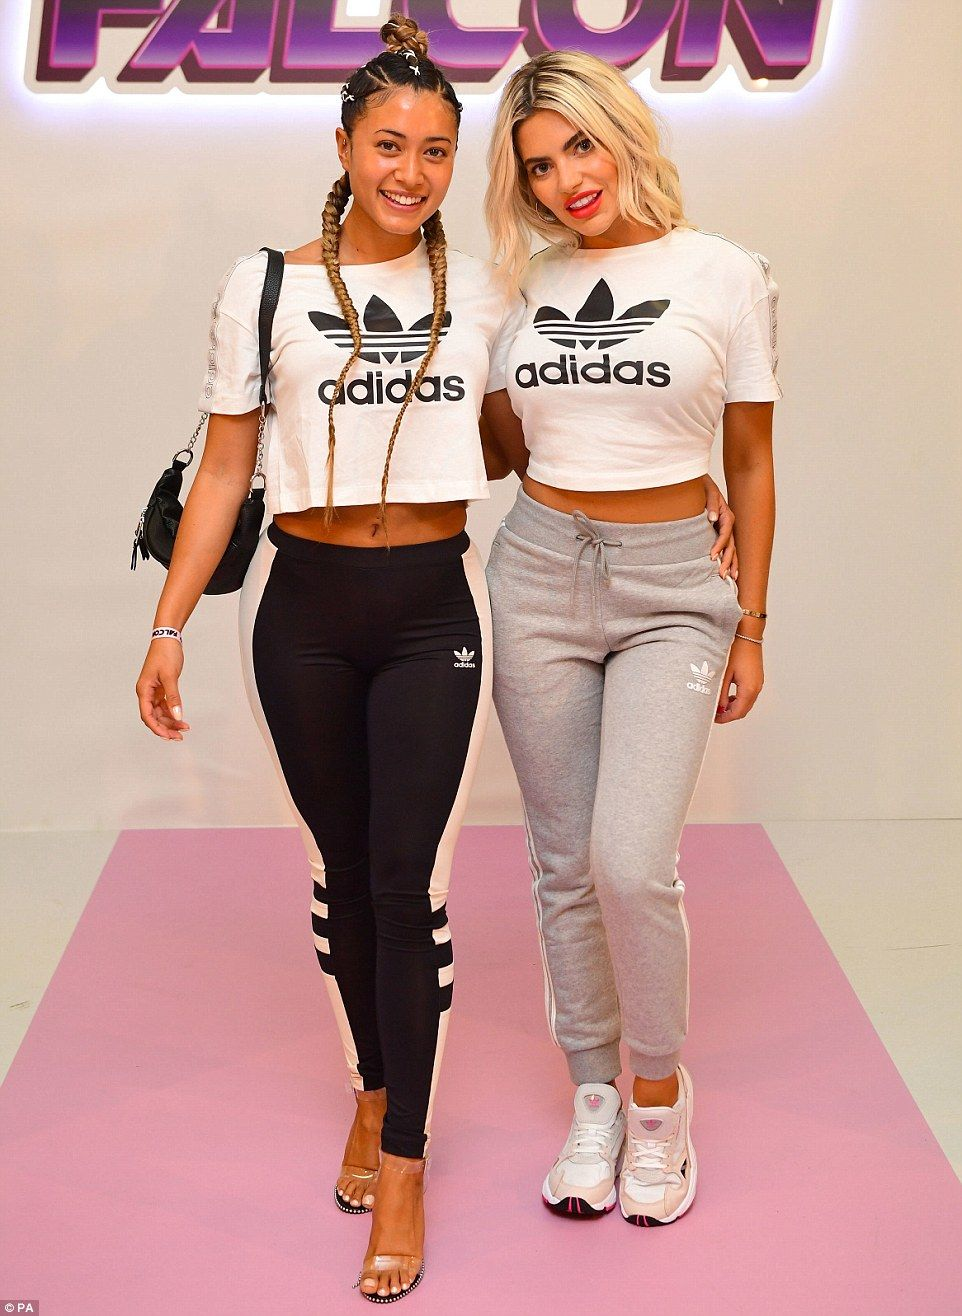 2d756f535365 Pals: The fashion event also proved to be a Love Island reunion of sorts,  as Megan Barton Hanson and Kaz Crossley - with the same branded t-shirt -  posed ...